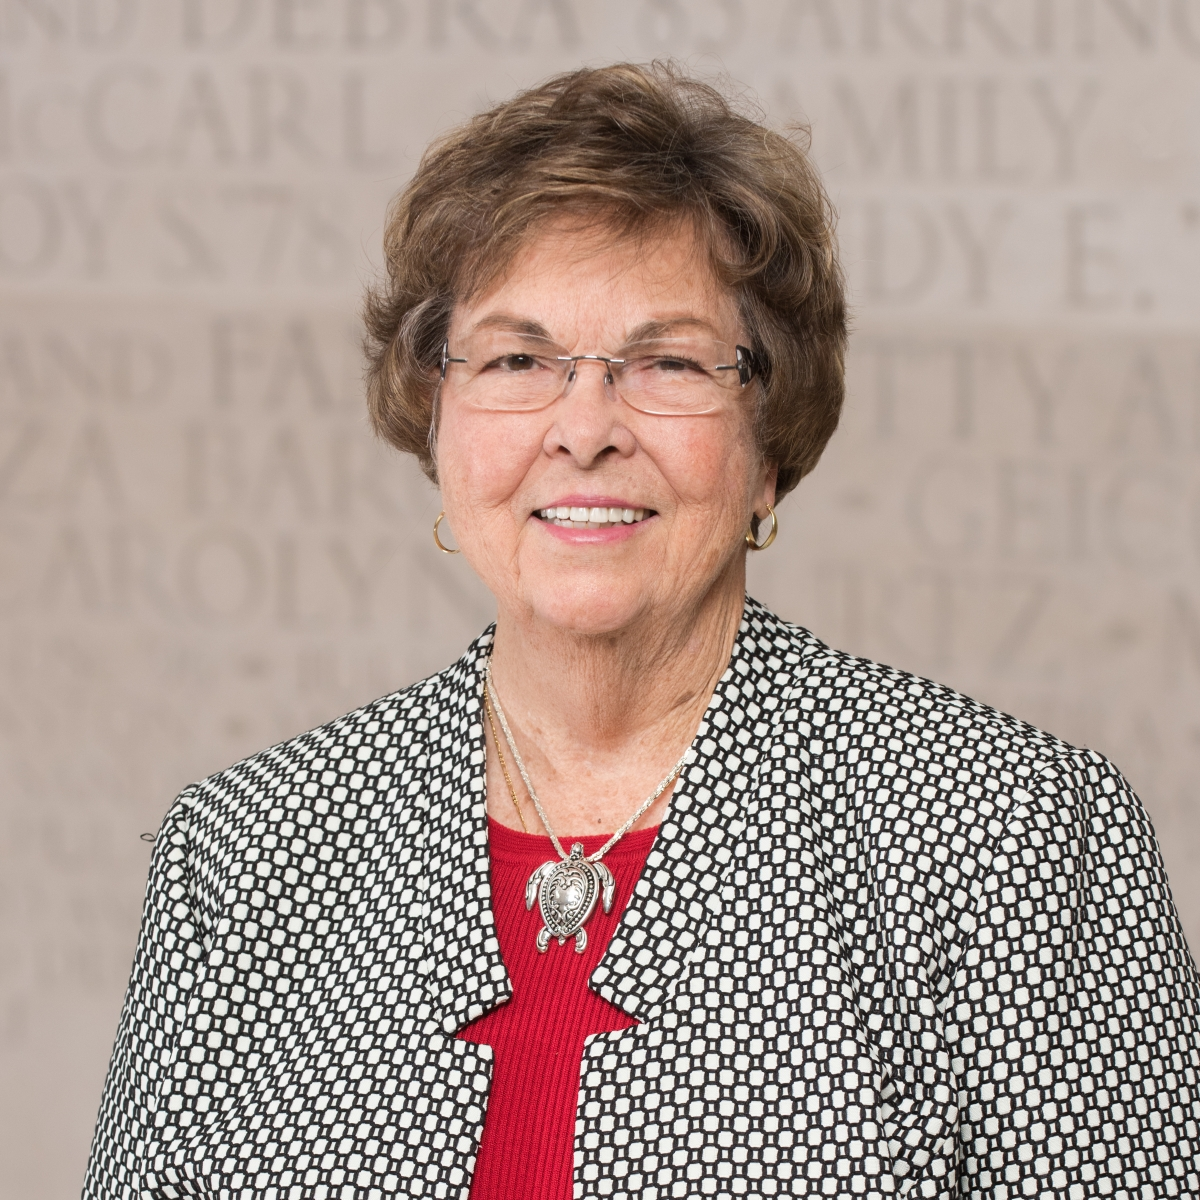 J. Linda Williams '77